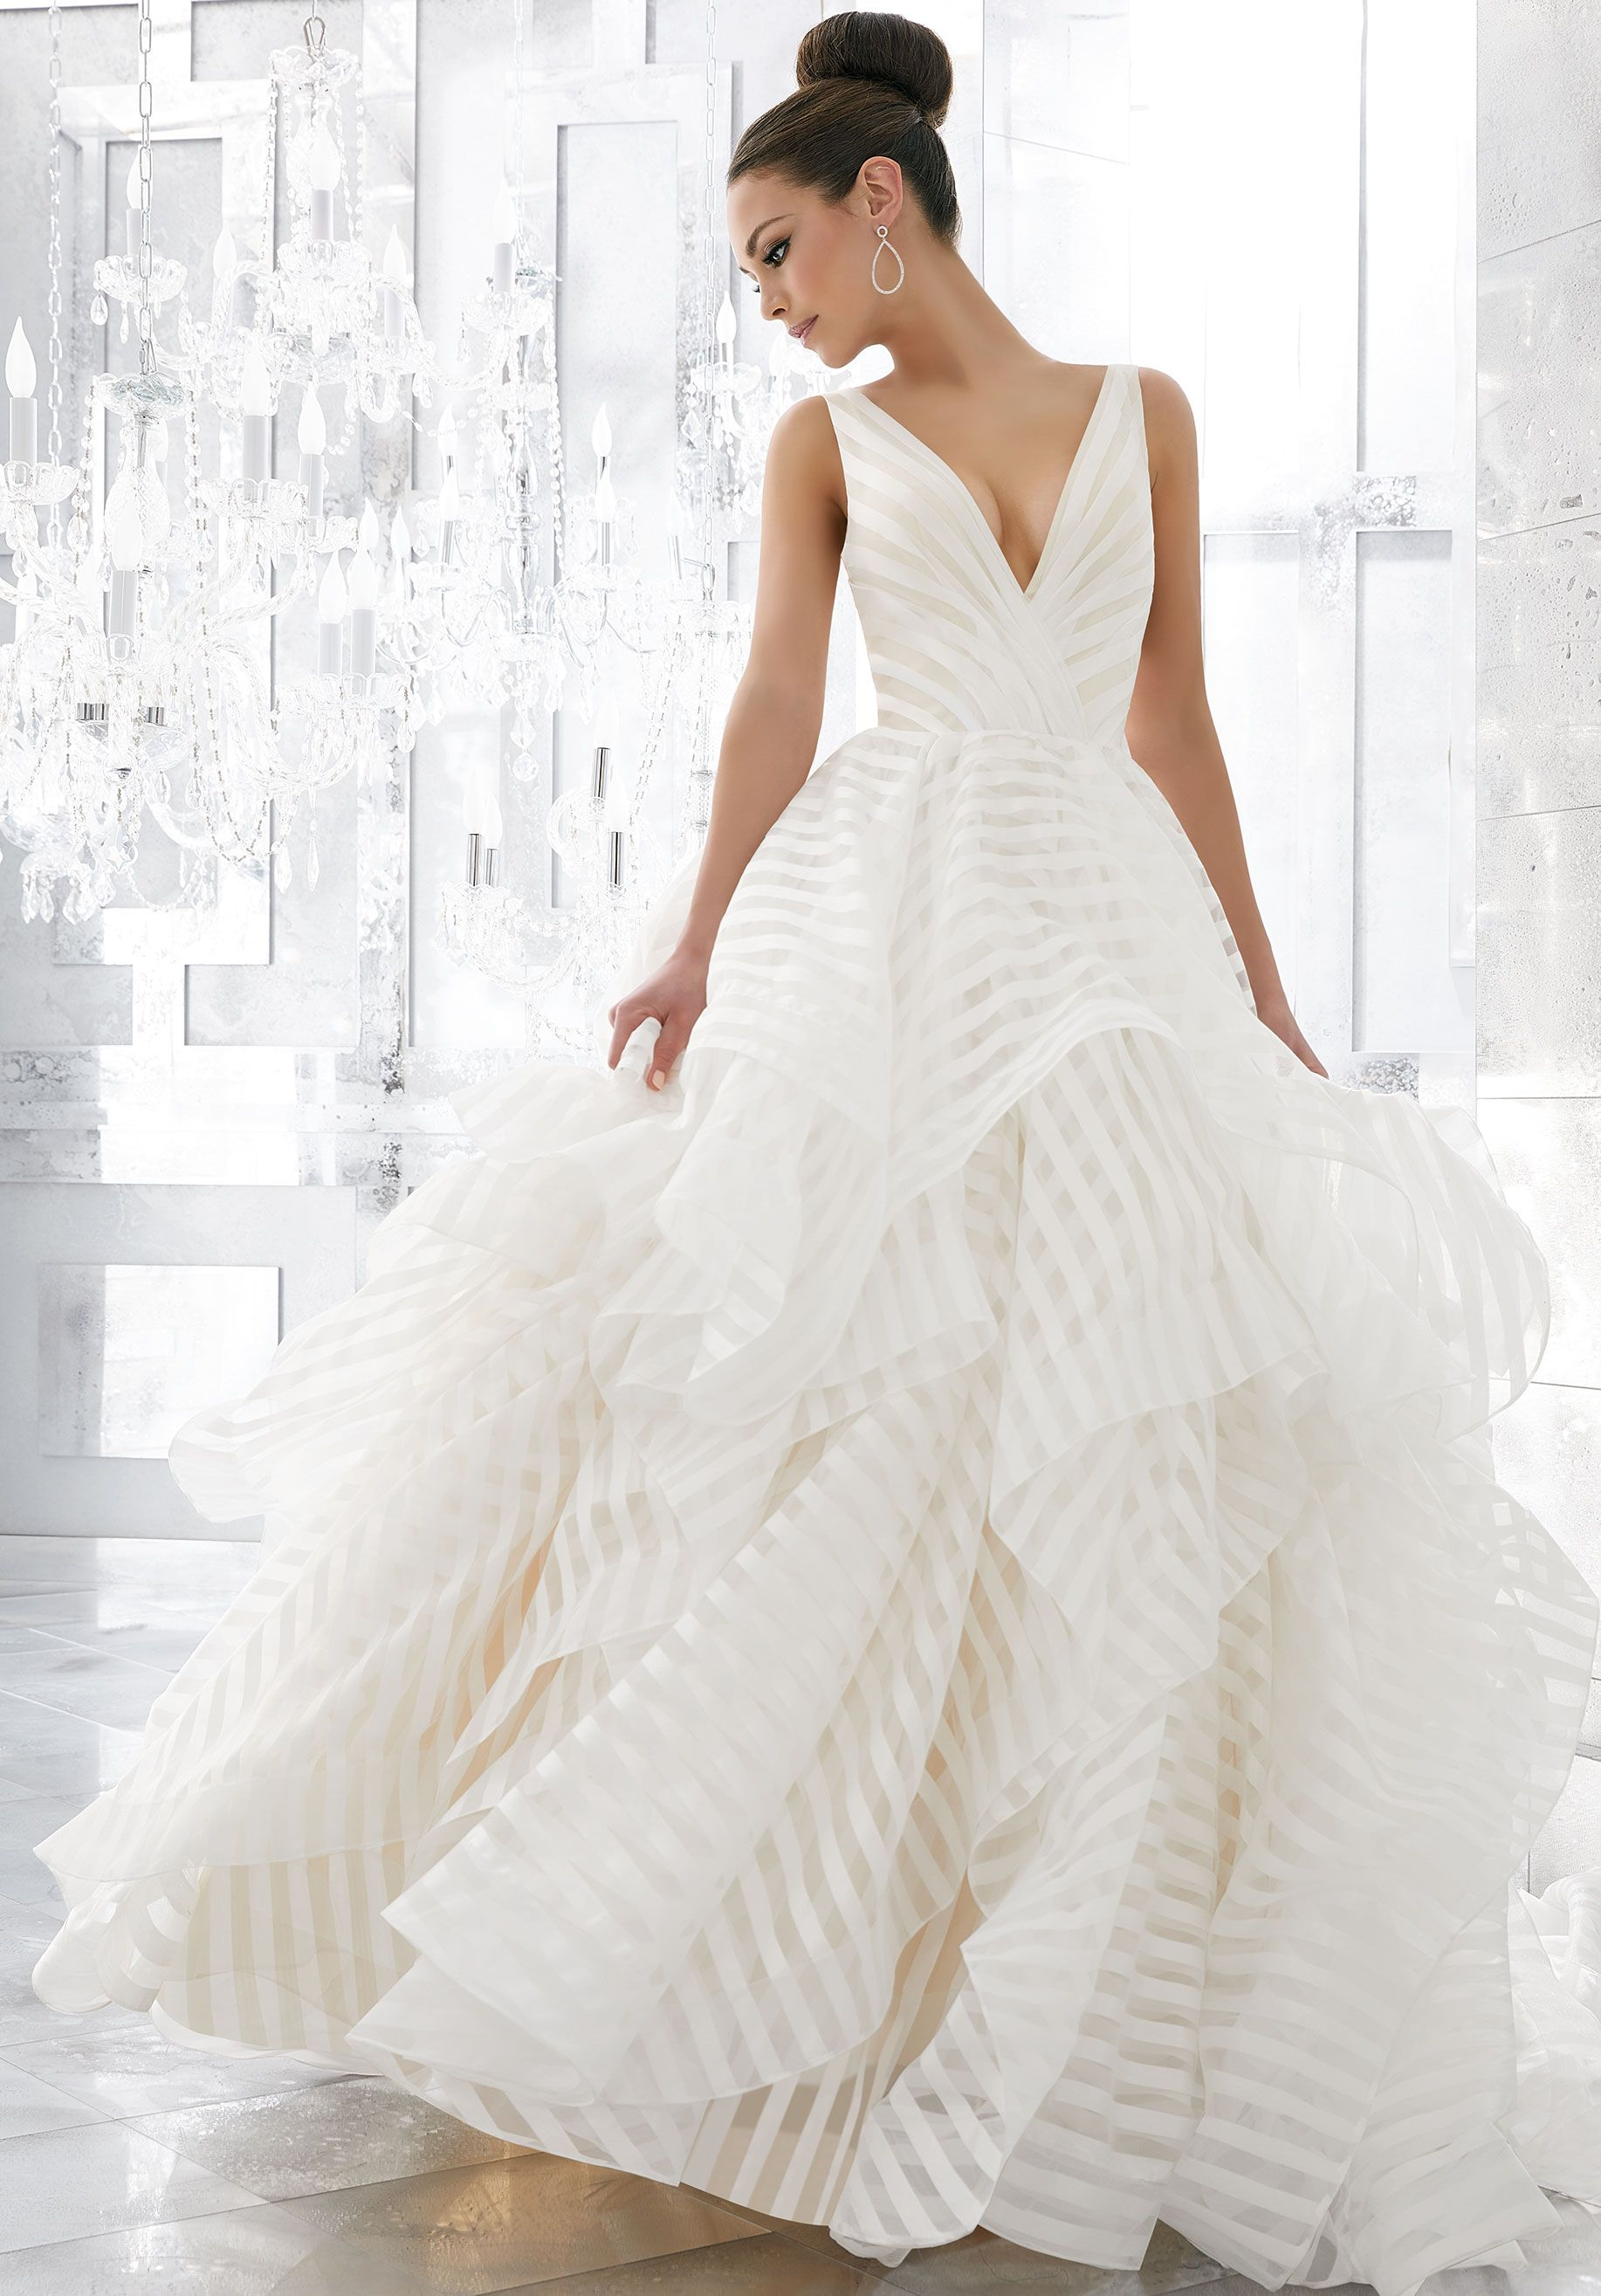 aaaa85dcbb0 Horsehair edging - folds of organza in this gown s sublime full skirt give  shape to clouds of billowing flounces fantasy bride- wedding ball gown